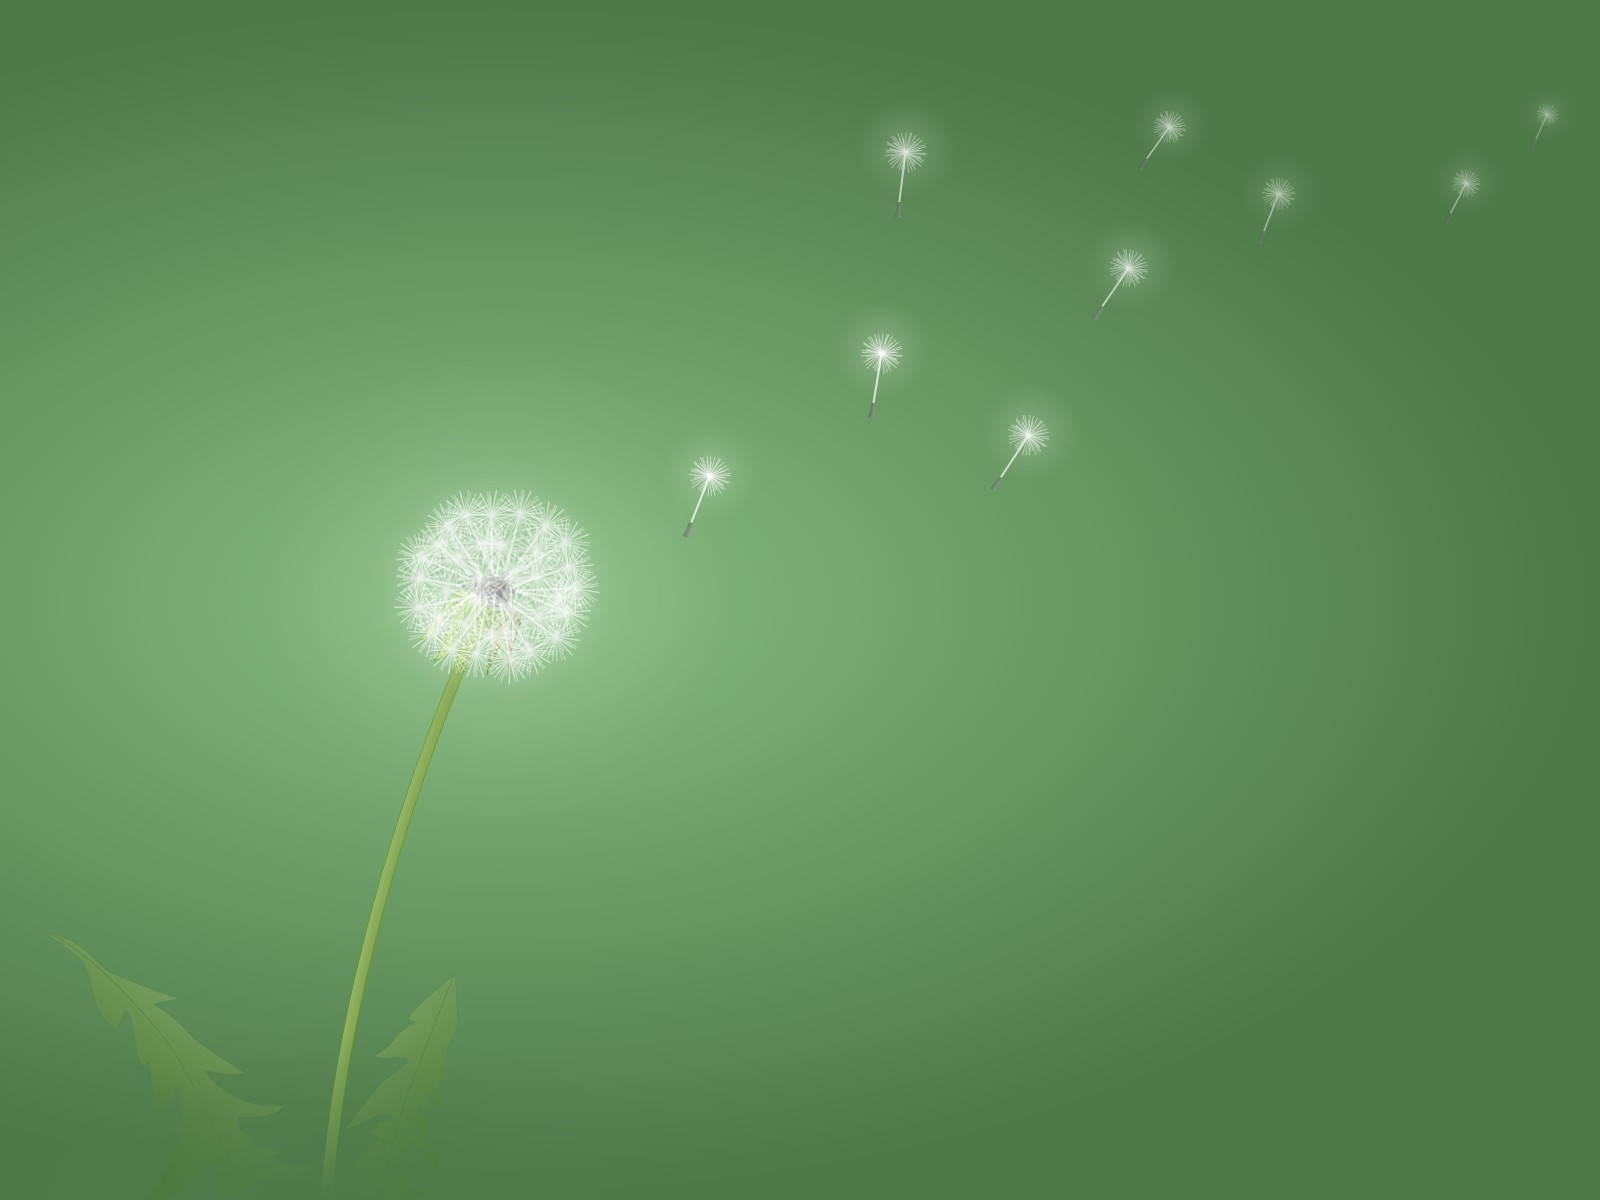 dandelion_wallpapers_7471_1600x1200.jpg